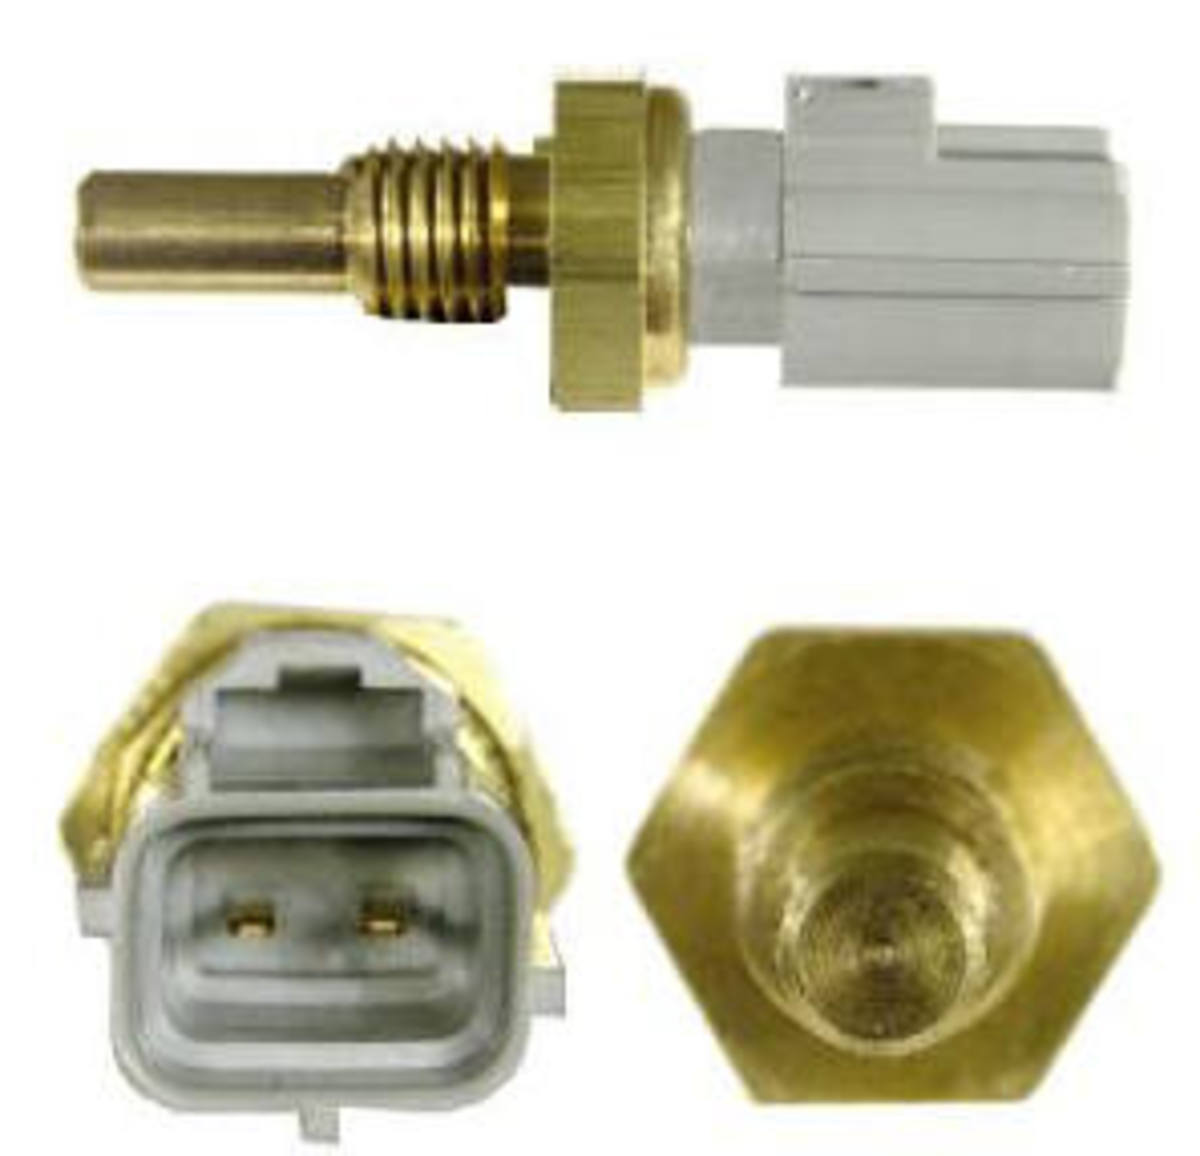 New Camry water temperature sensor